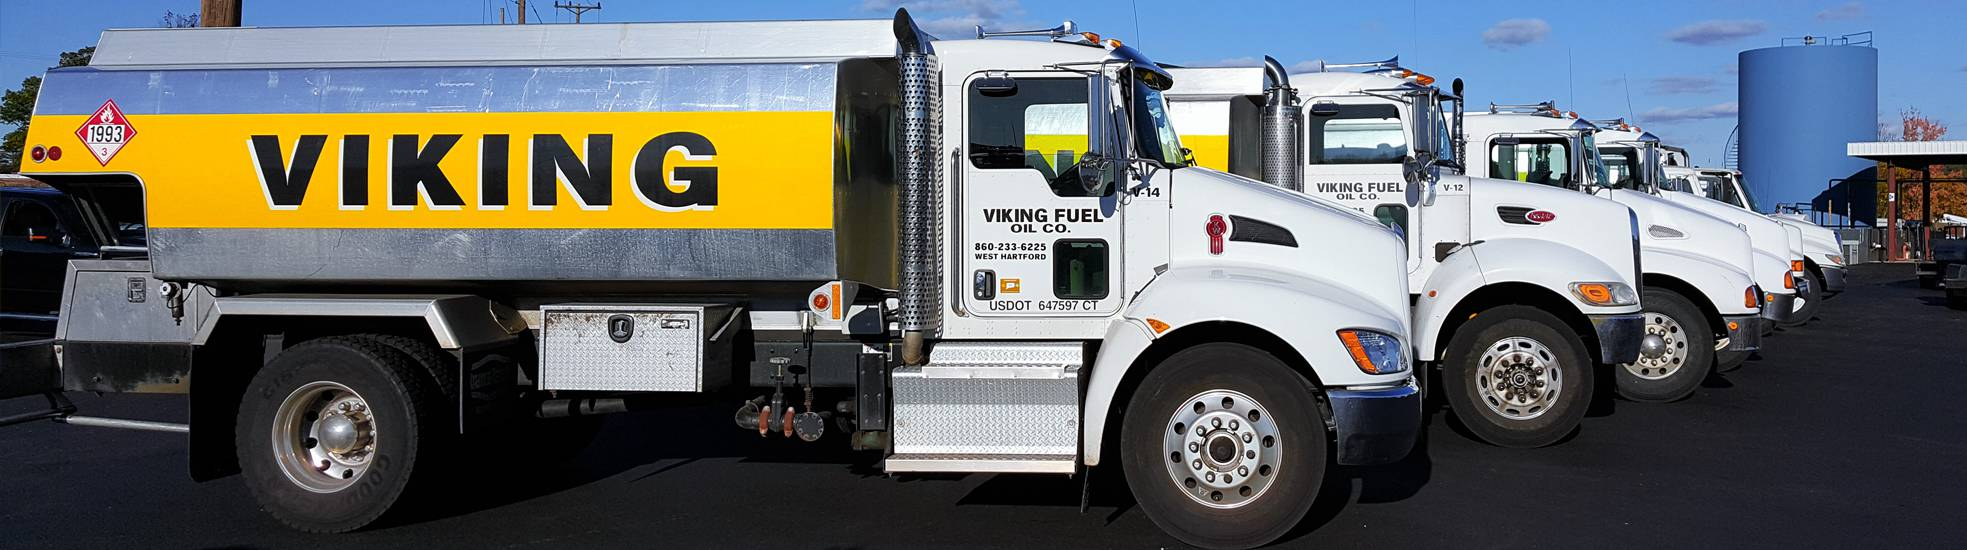 Viking Fuel Home Oil Delivery and Service - Vikingfuel